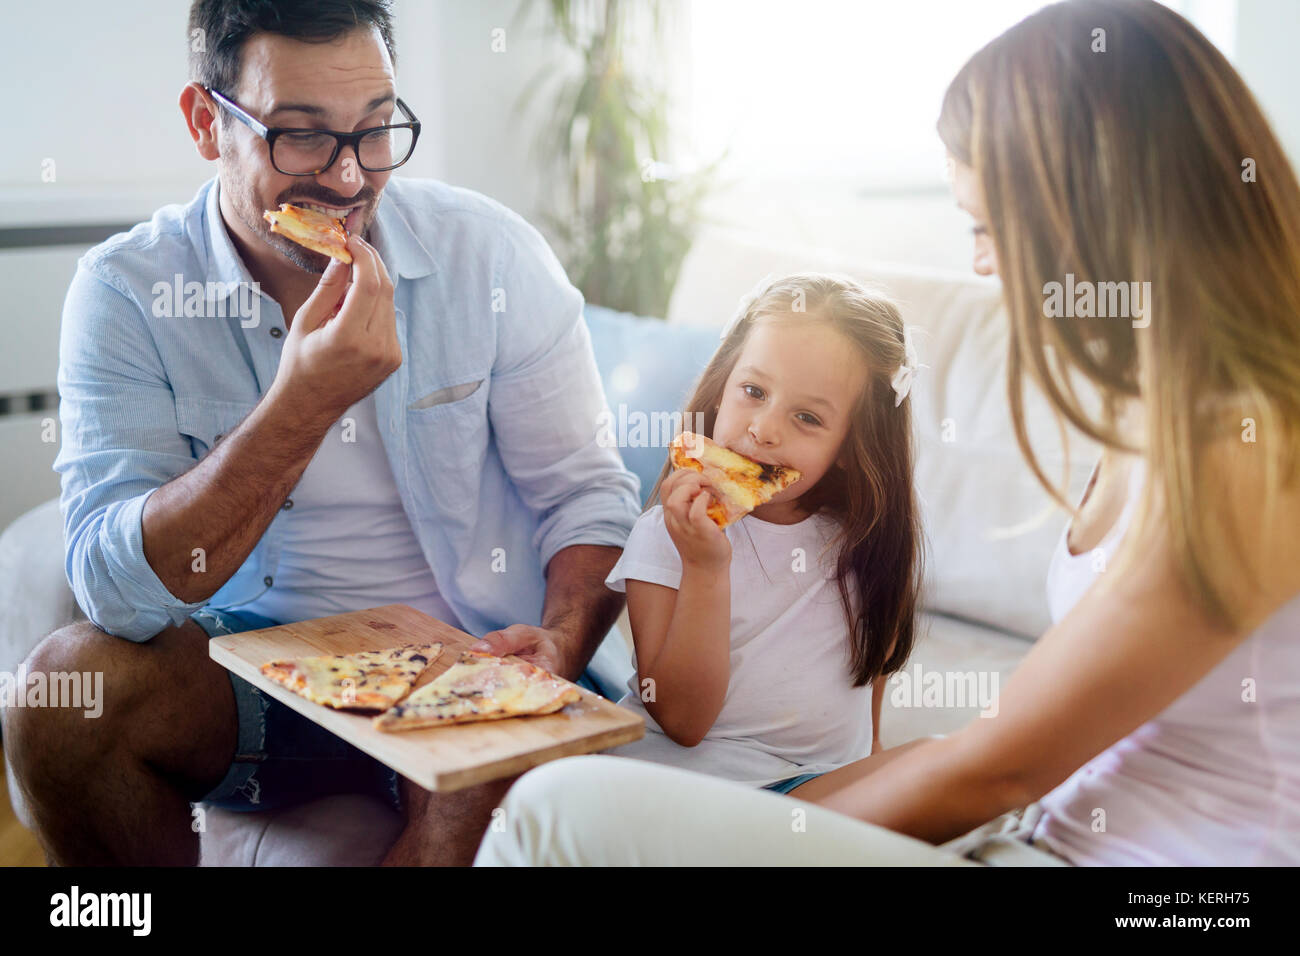 Happy family sharing pizza together at home - Stock Image